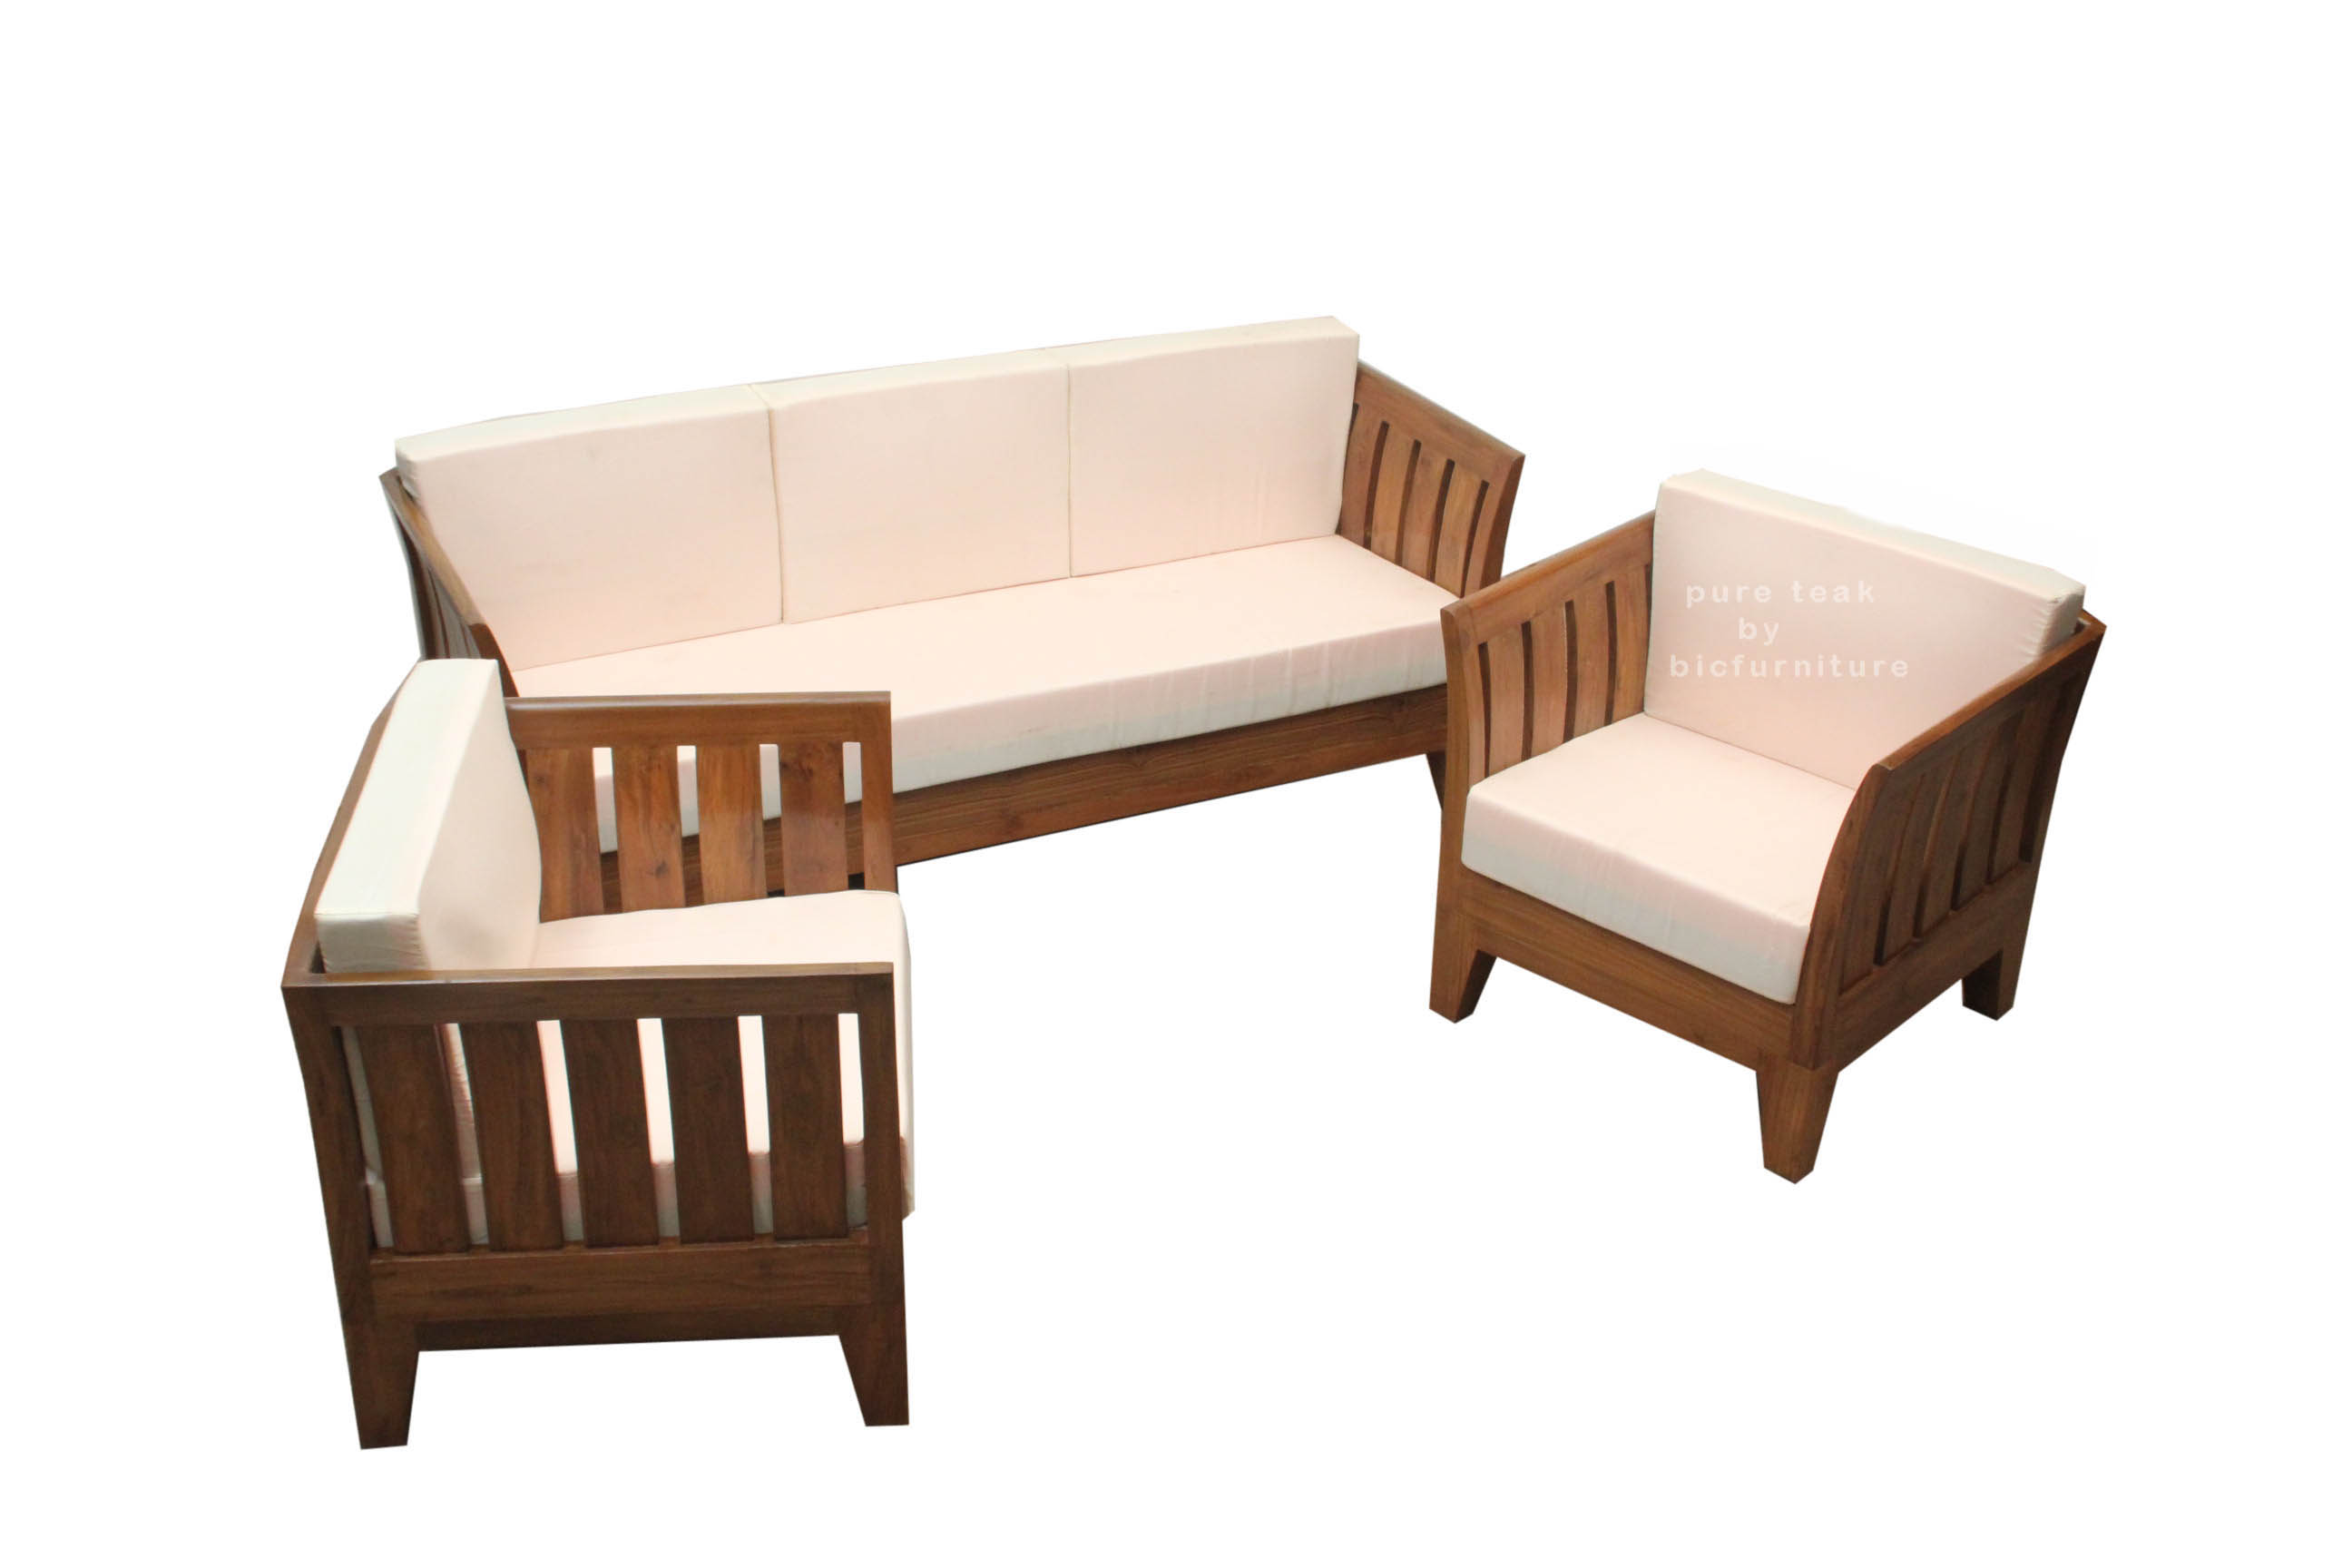 Teak Wood Sofa Set Ws 60 Details Bic Furniture India